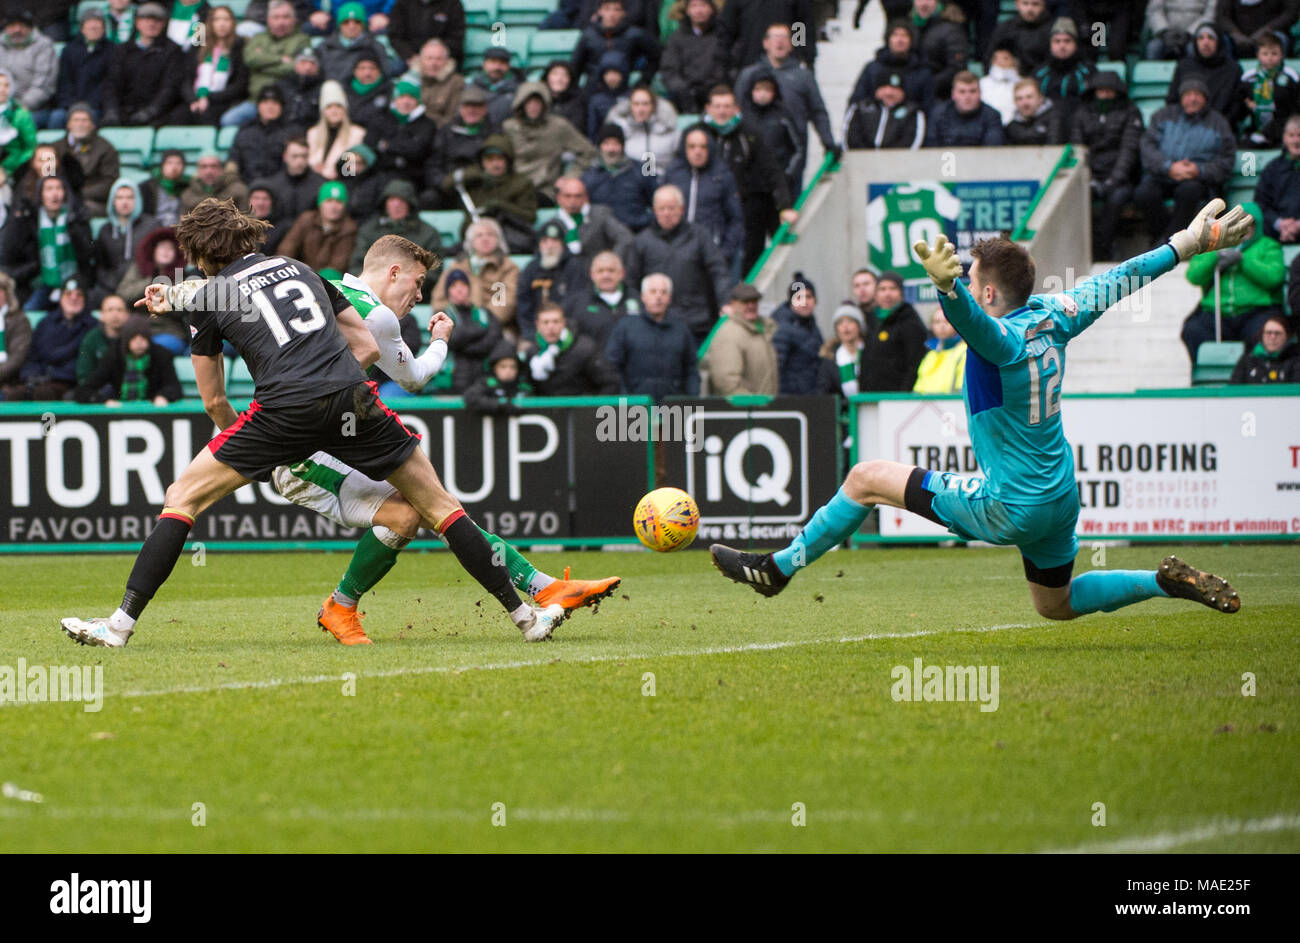 Edinburgh, UK, 31 Mar 2018.  Pic shows:  Hibs's Florian Kamberi goes close during the second half of the Scottish Premiereship clash between Hibernian and Partick Thistle at Easter Road Stadium, Edinburgh.  Credit: Alamy/Ian Jacobs Stock Photo